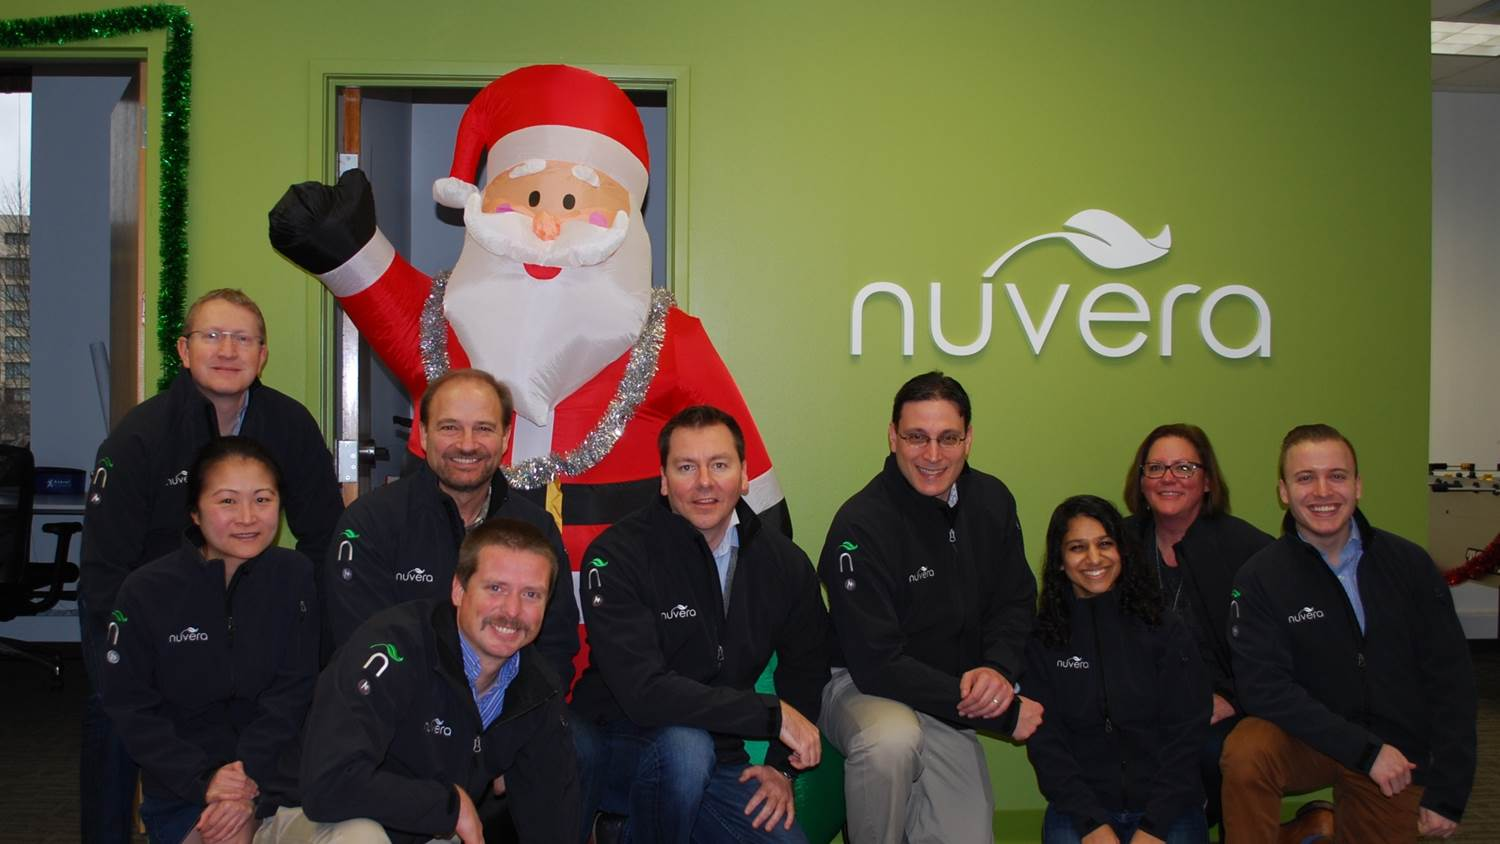 Christmas_2015_Nuvera_Team